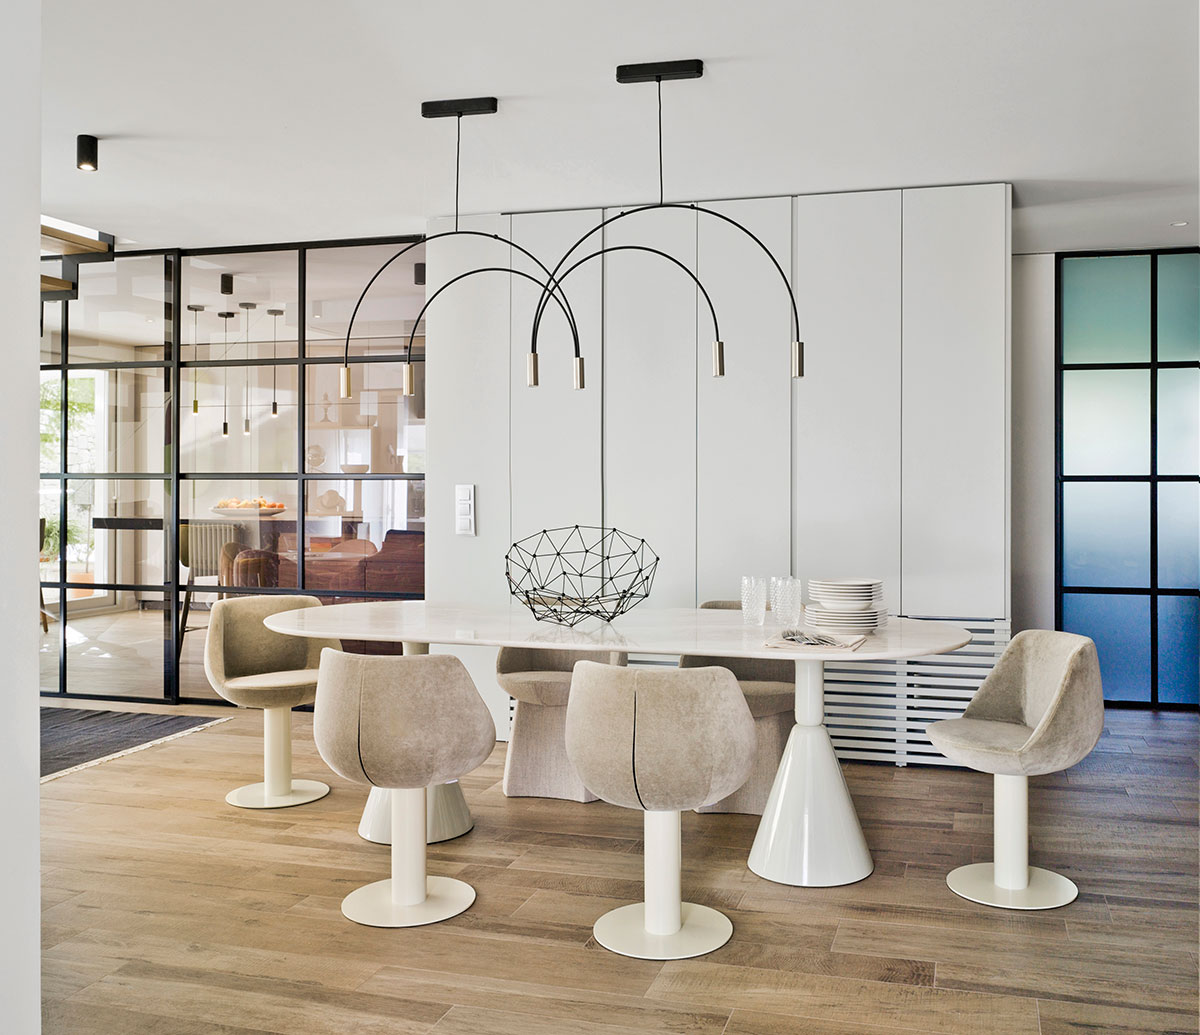 Sancal Magnum dining chair with Pion dining table from Sancal